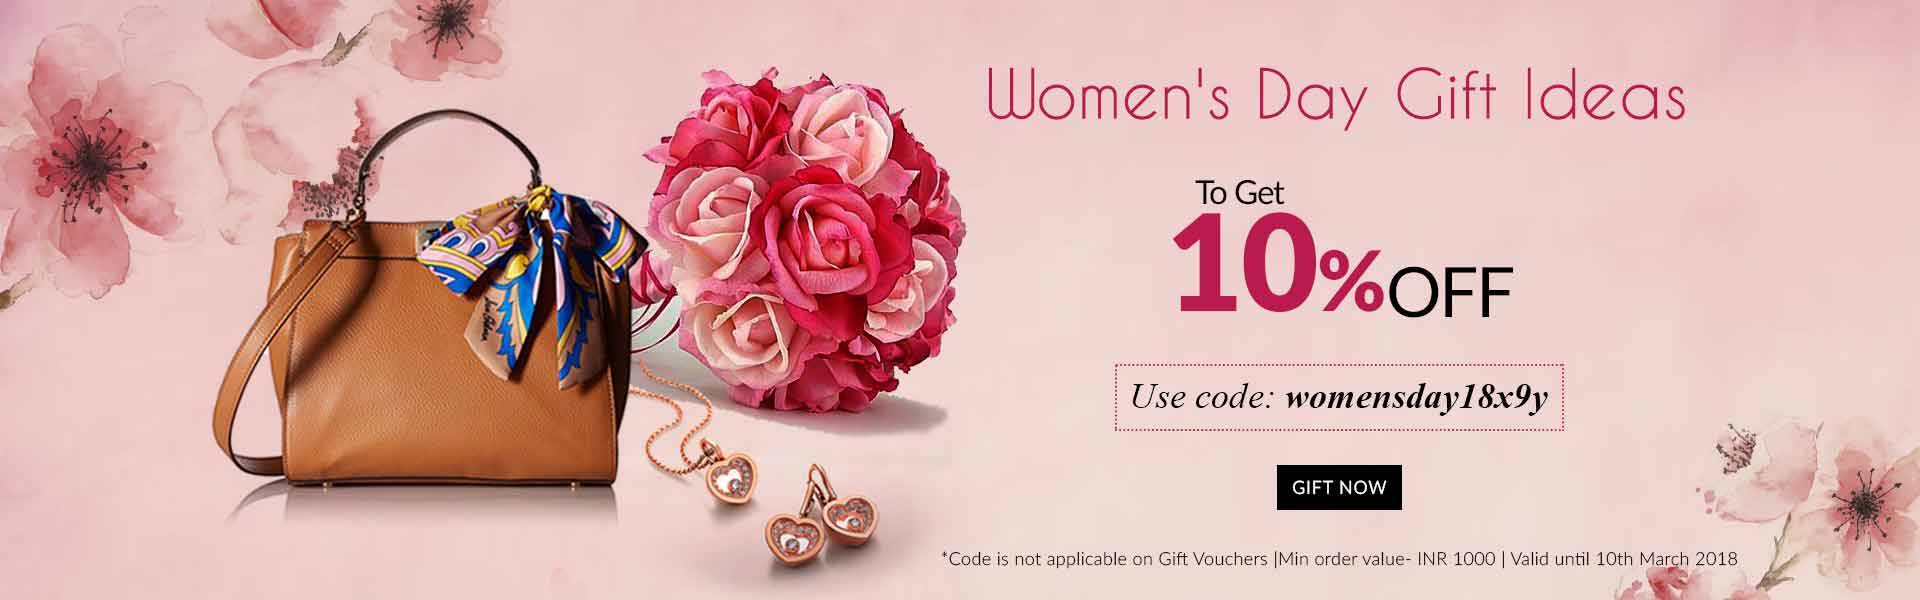 Women's Day Gift Ideas 2018